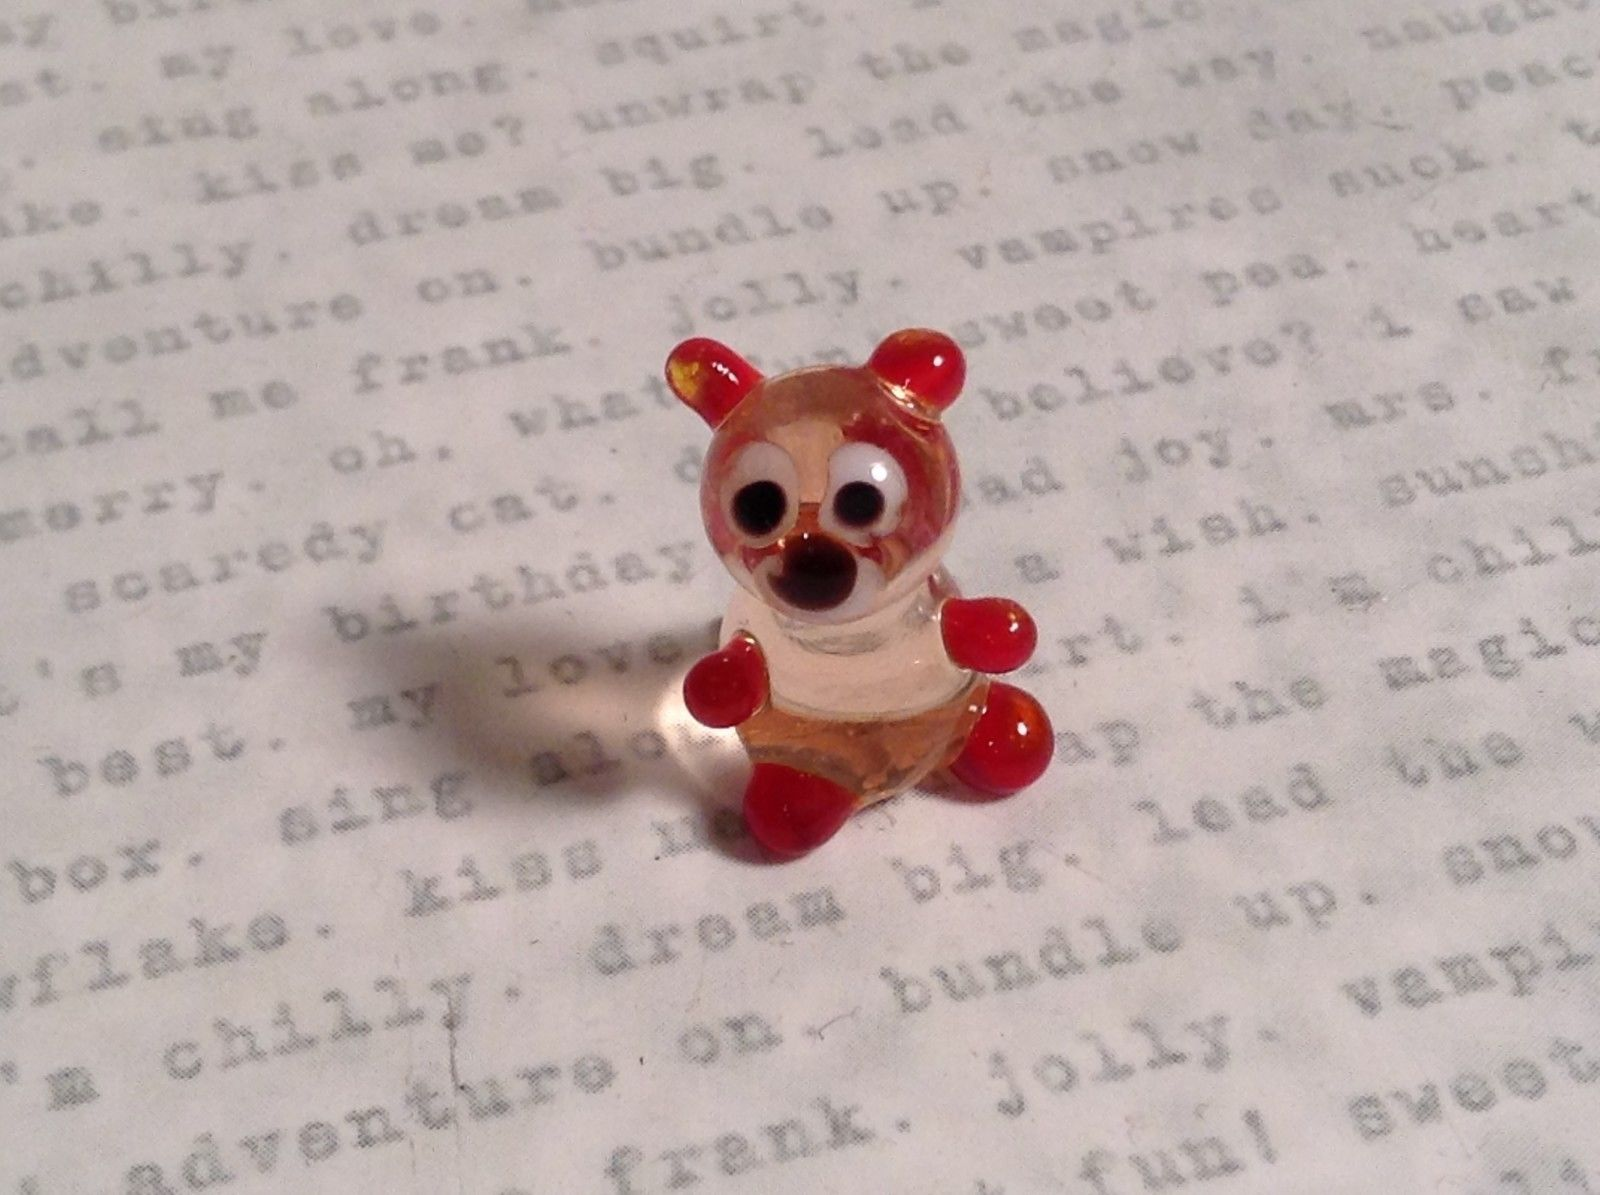 Micro miniature small hand blown glass clear and red bear USA made